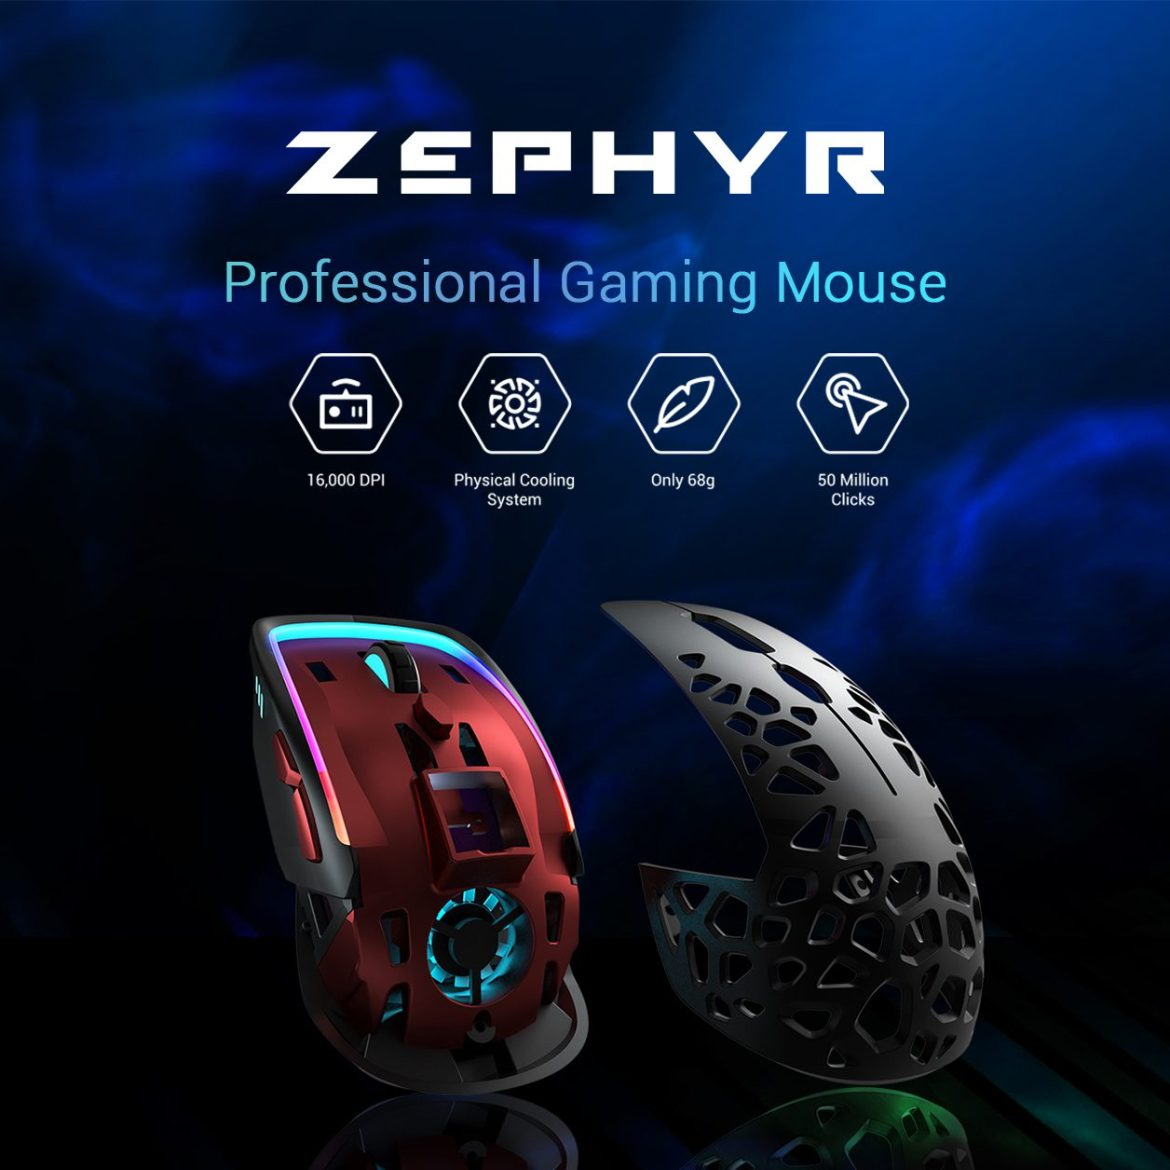 Now Funding: the Zephyr Gaming Mouse